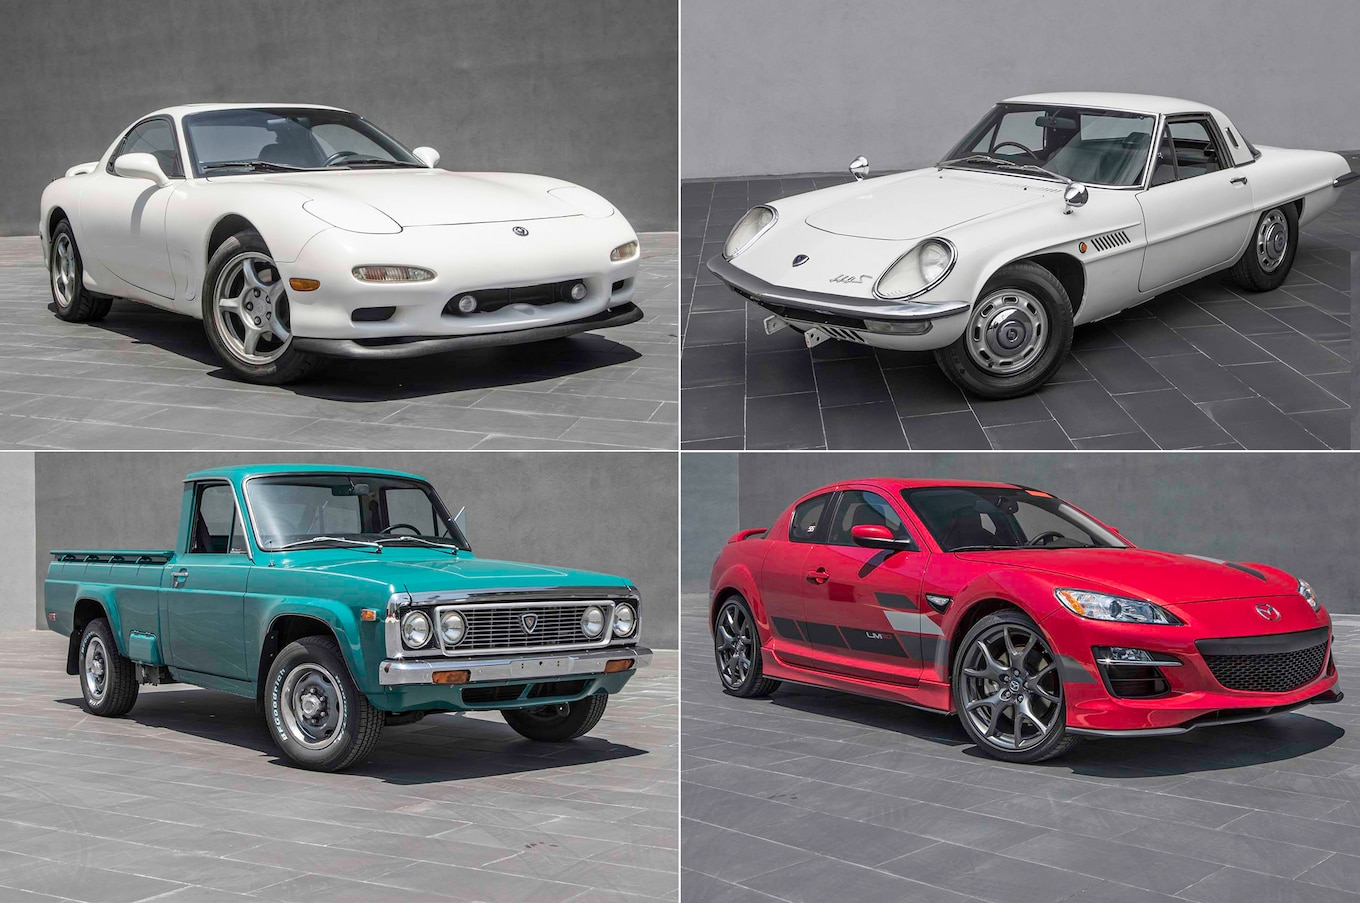 hight resolution of 50 years of mazda rotary engines driving a 67 cosmo sport 93 rx 7 11 rx 8 and more motortrend